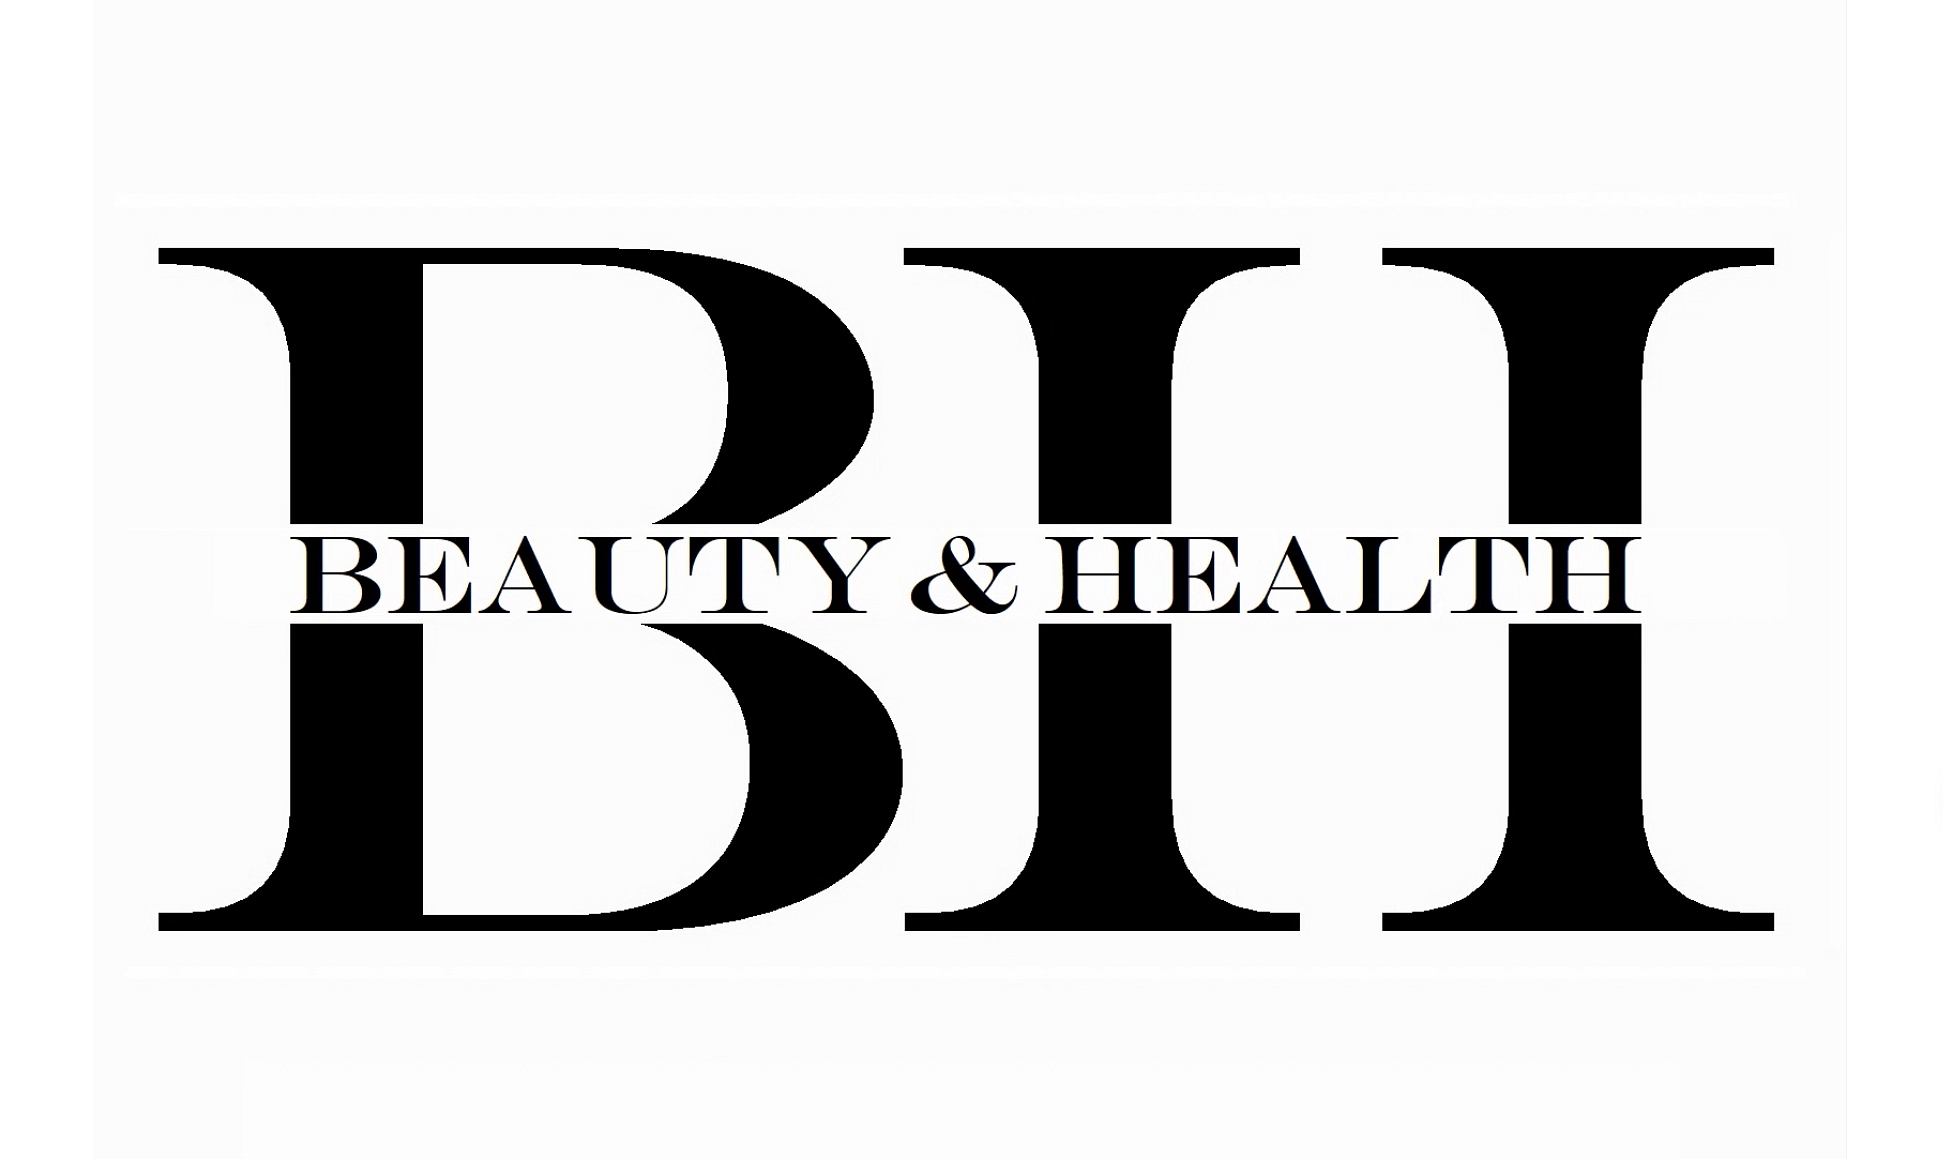 BH - Beauty and Health